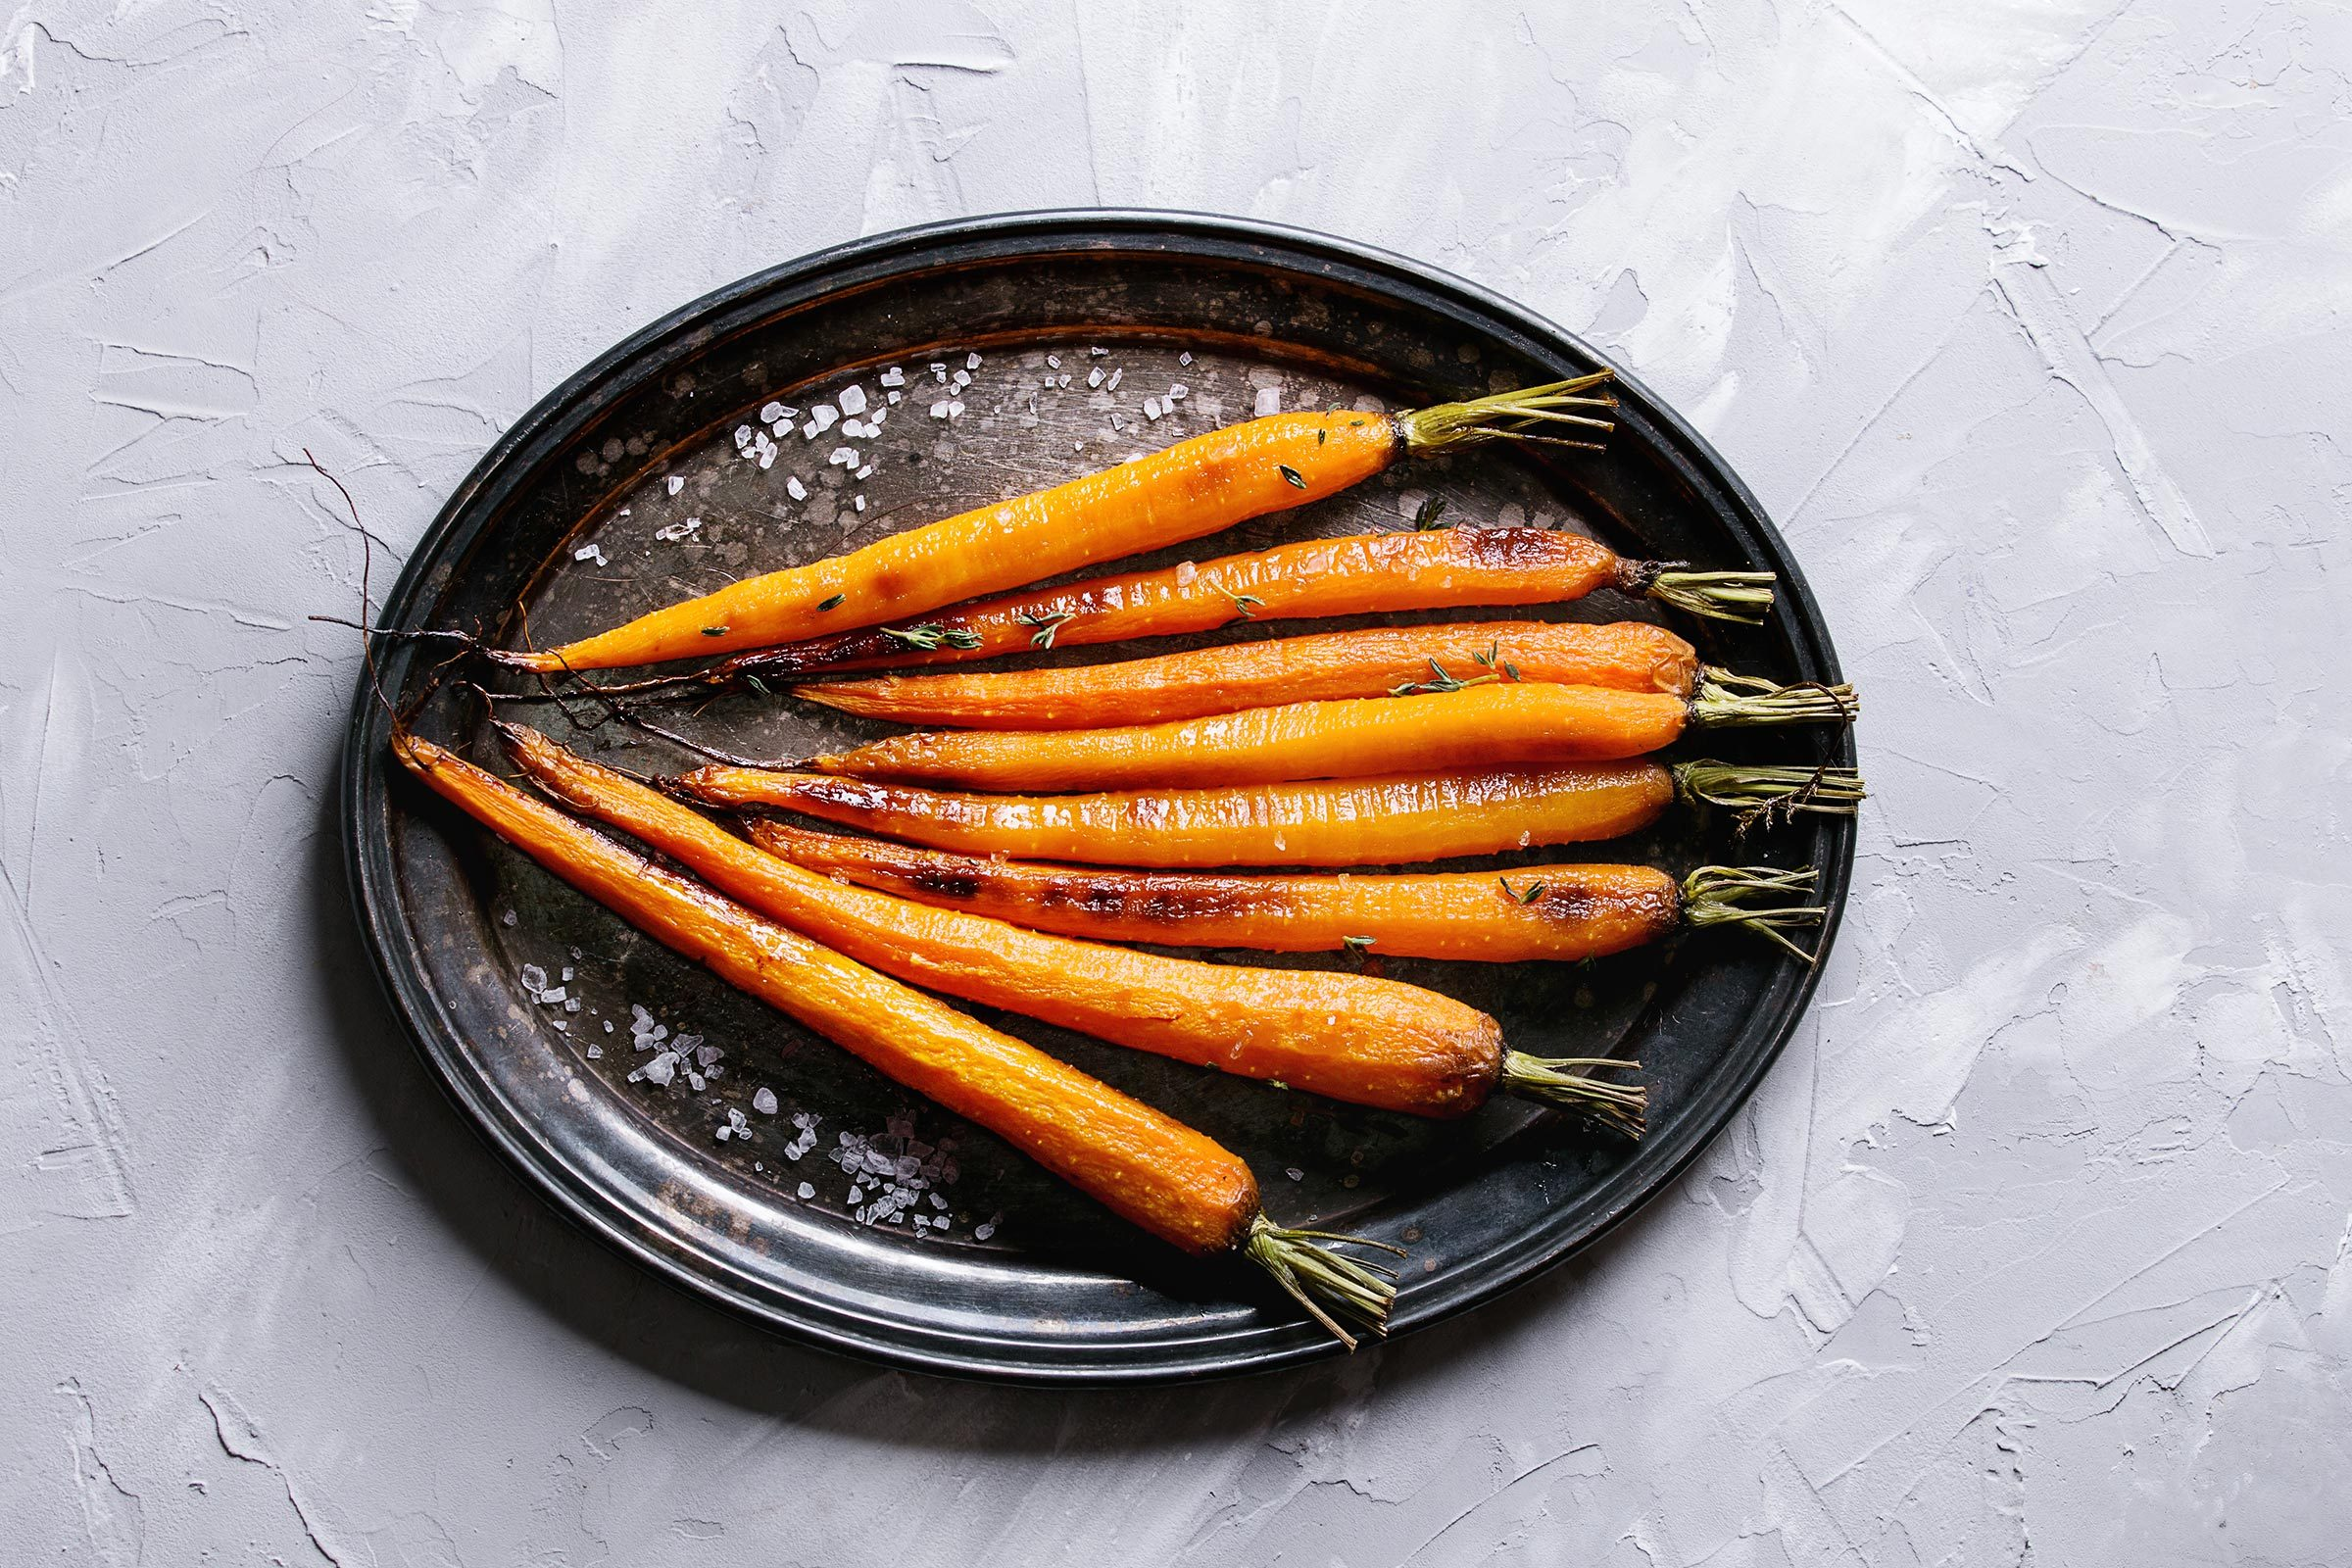 cooked, whole carrots on a black plate